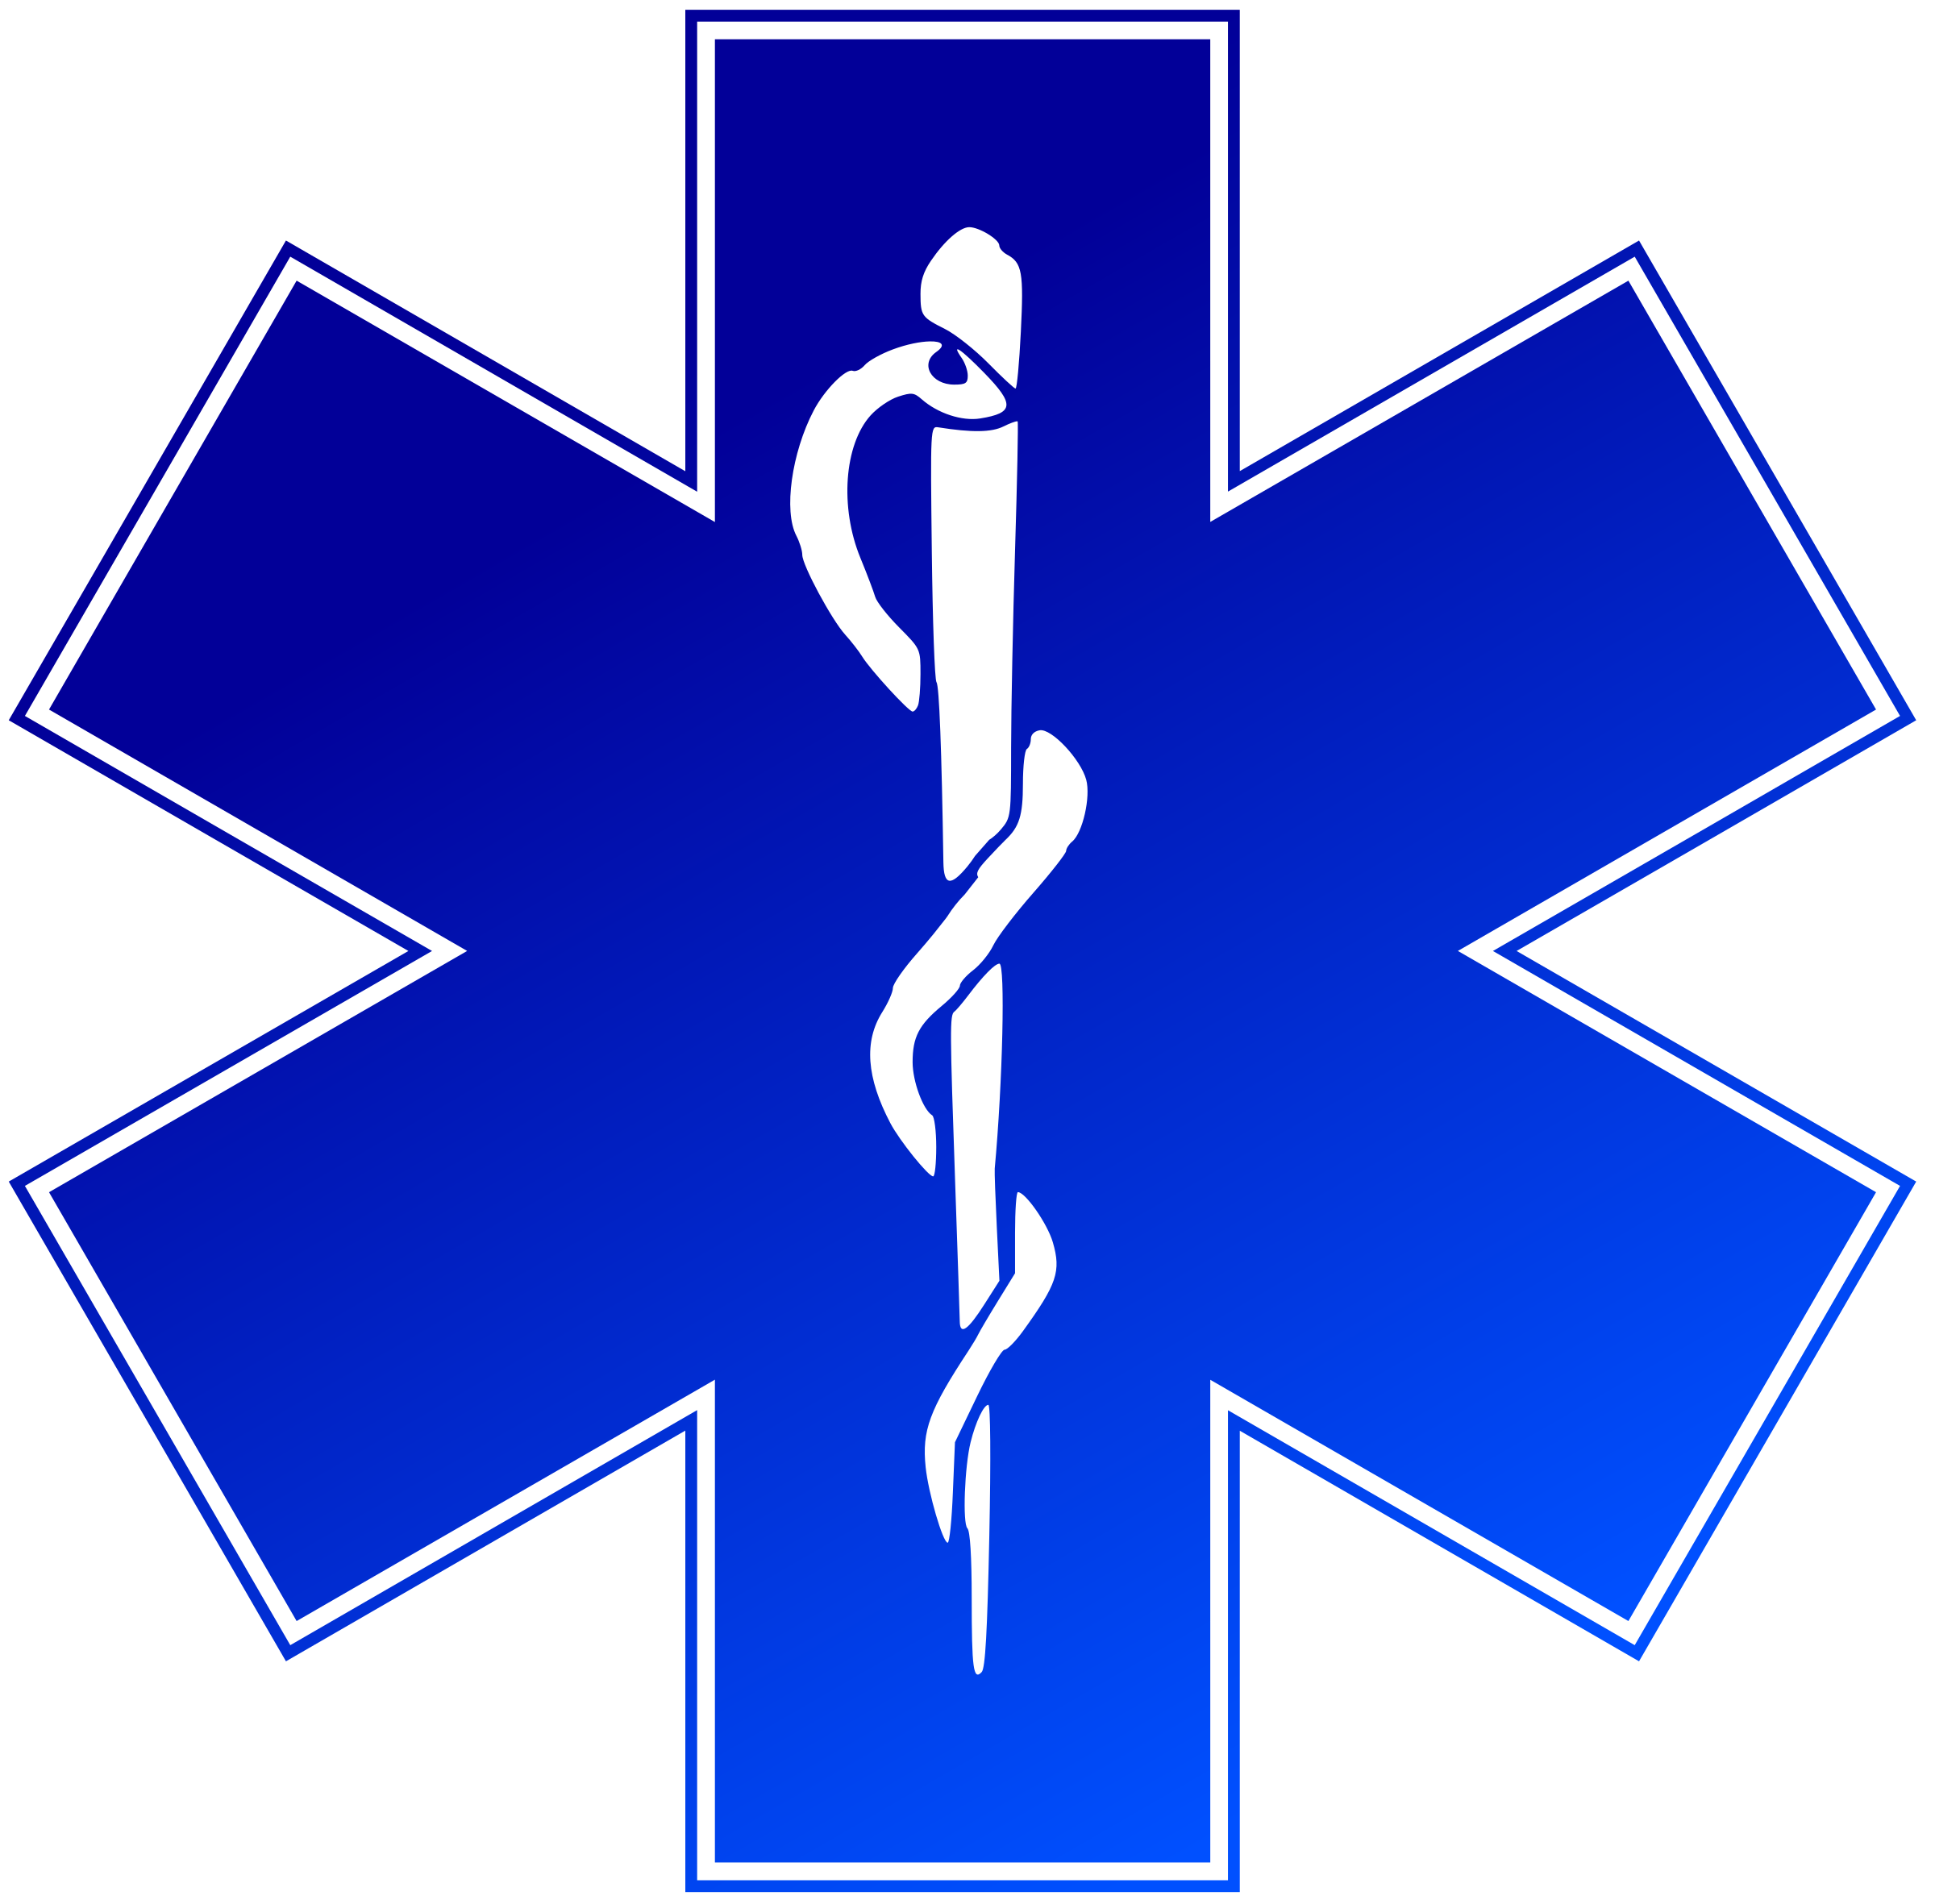 EMS (emergency medical service) logo by swalko